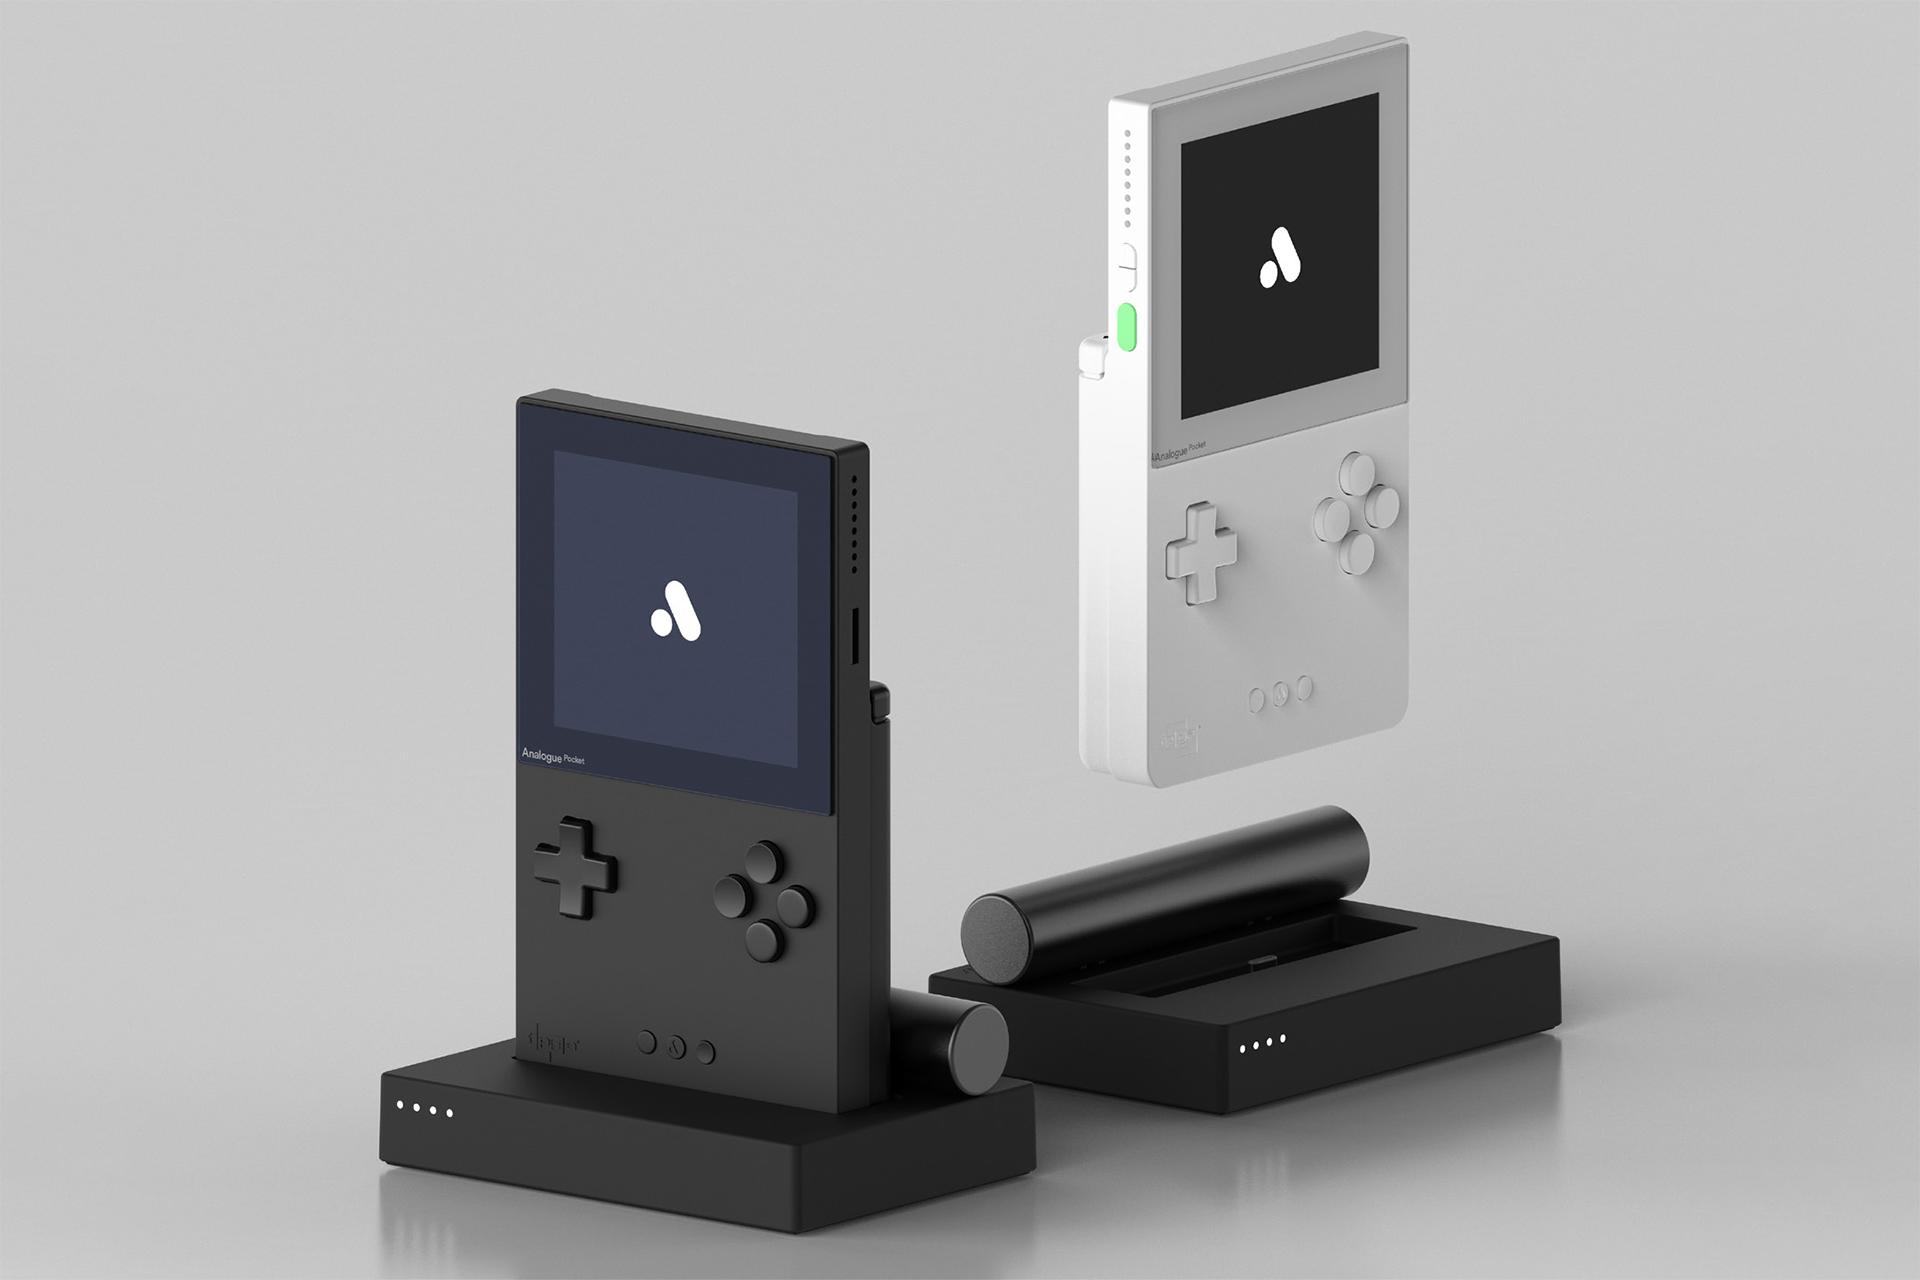 Analogue's portable Pocket console is delayed until May 2021 – Yahoo Finance Australia